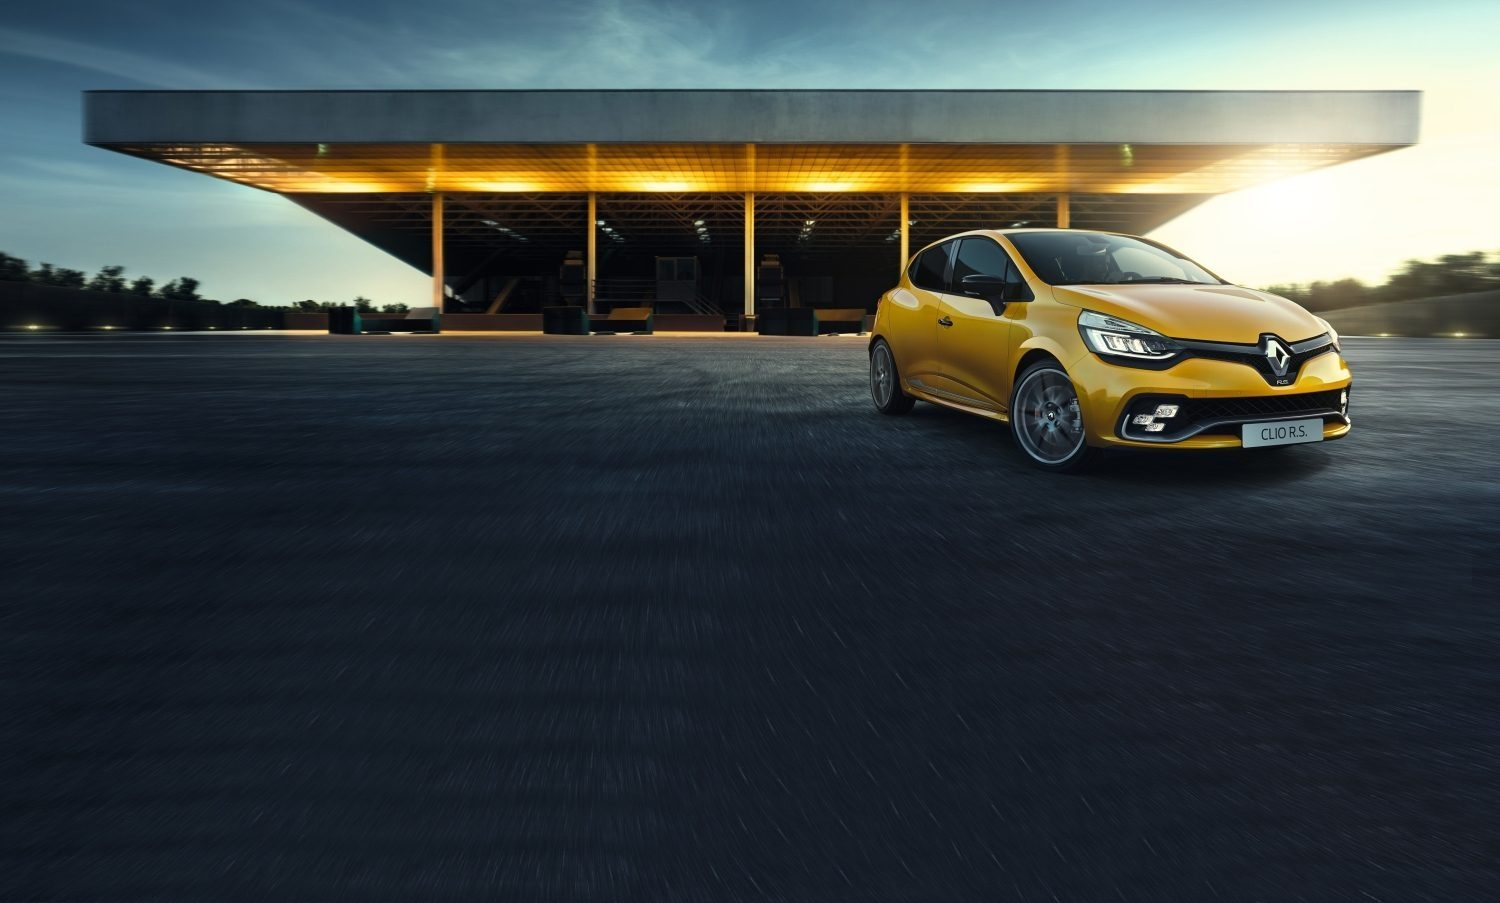 renault-clio-rs-ph2-desktop.jpg.ximg.l_full_m.smart.jpg.ximg.l_full_m.smart.jpg